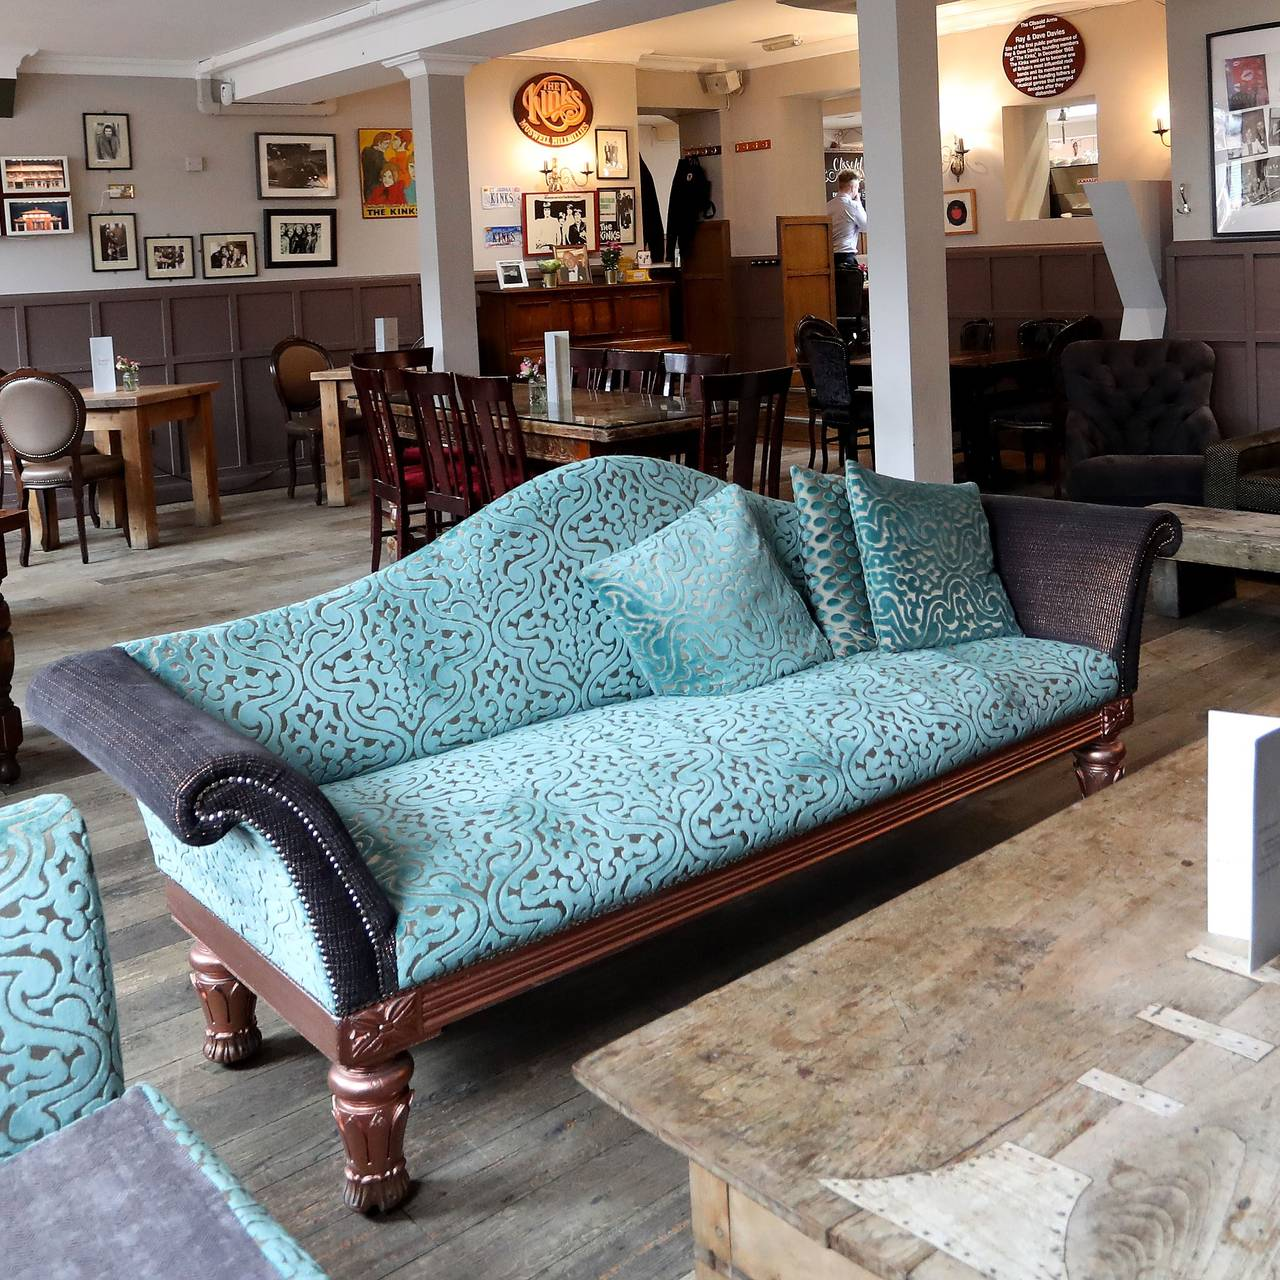 Clissold Arms Restaurant - London, | OpenTable